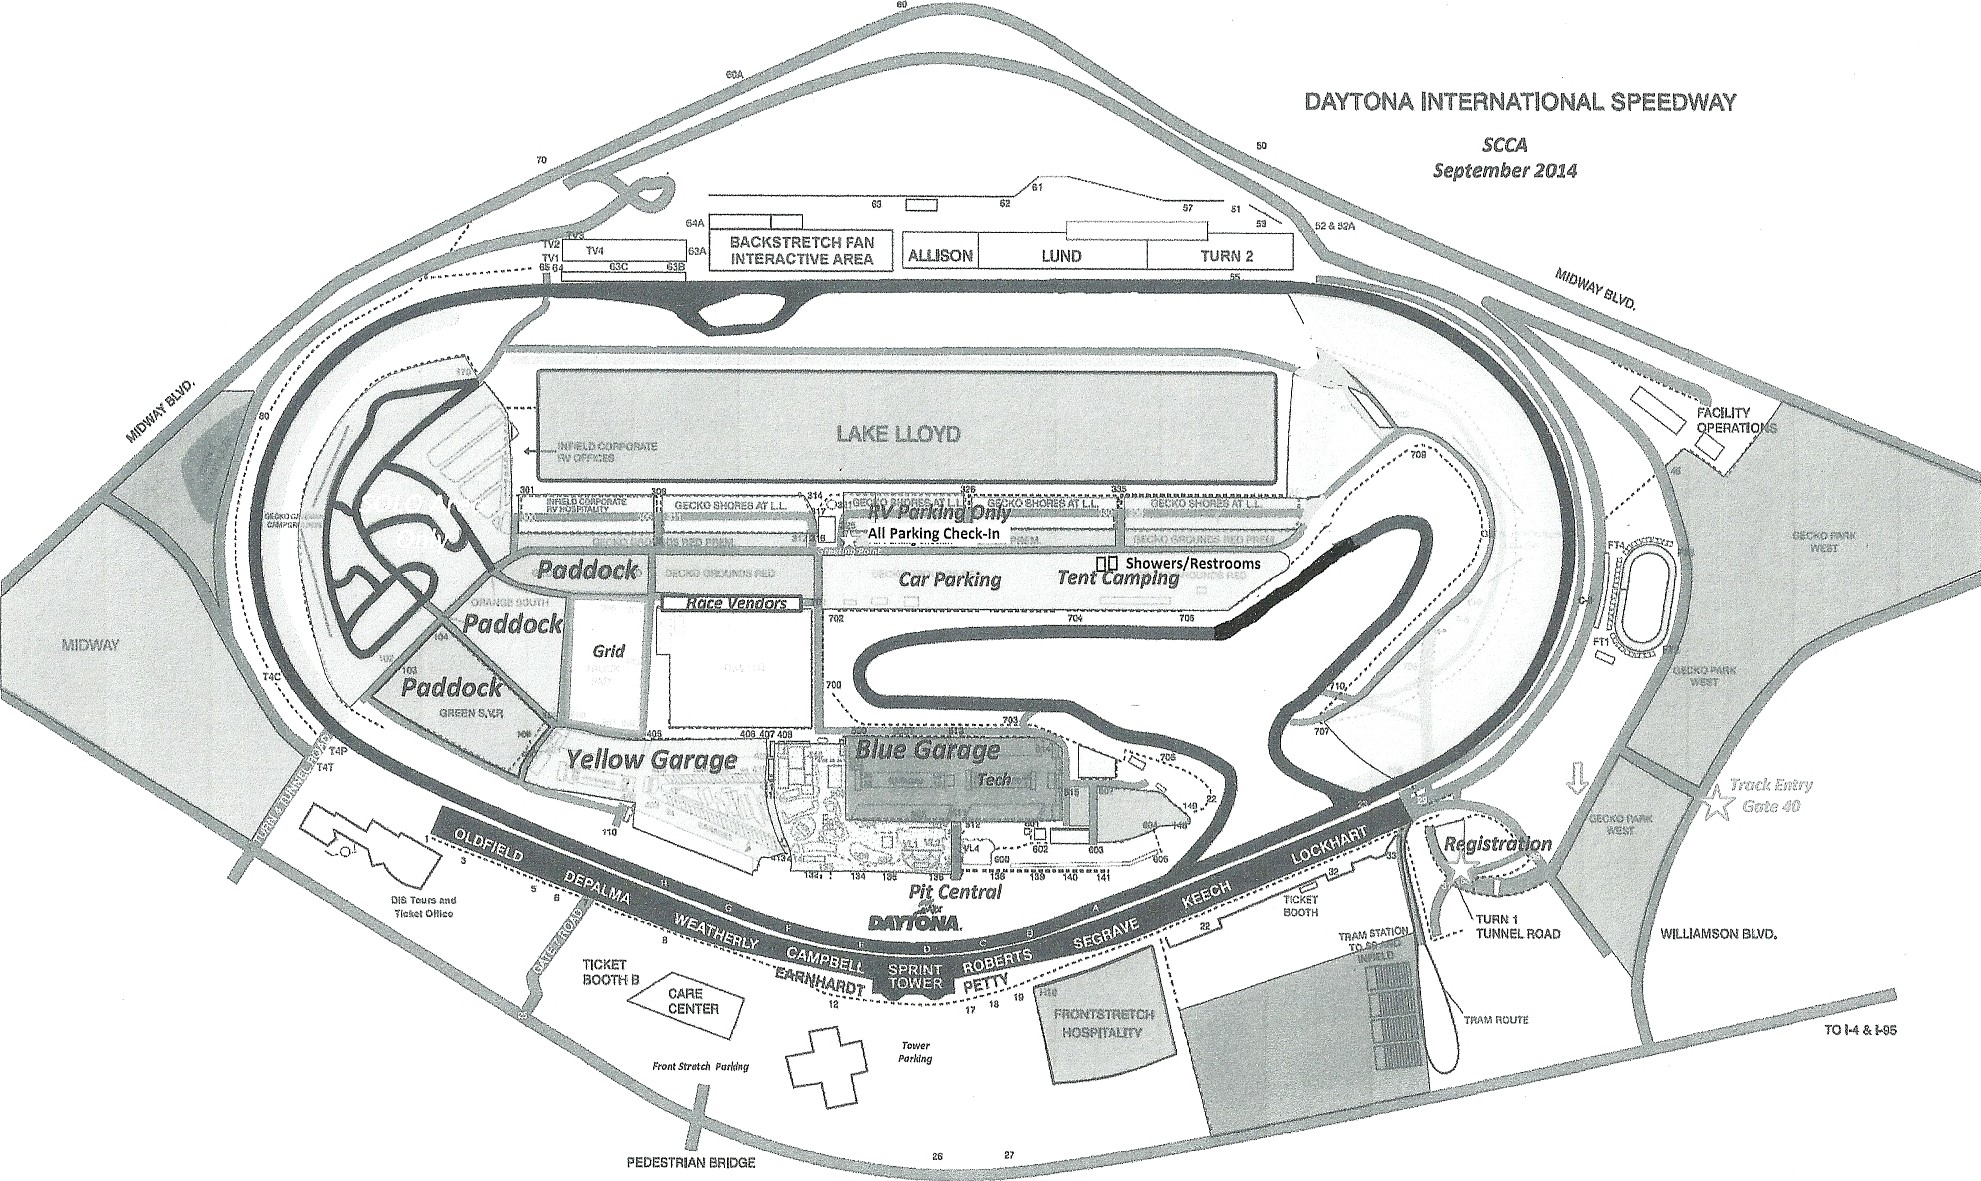 Daytona International Speedway - Paddock Parking Map - Gray Scale Version - Sept 2014